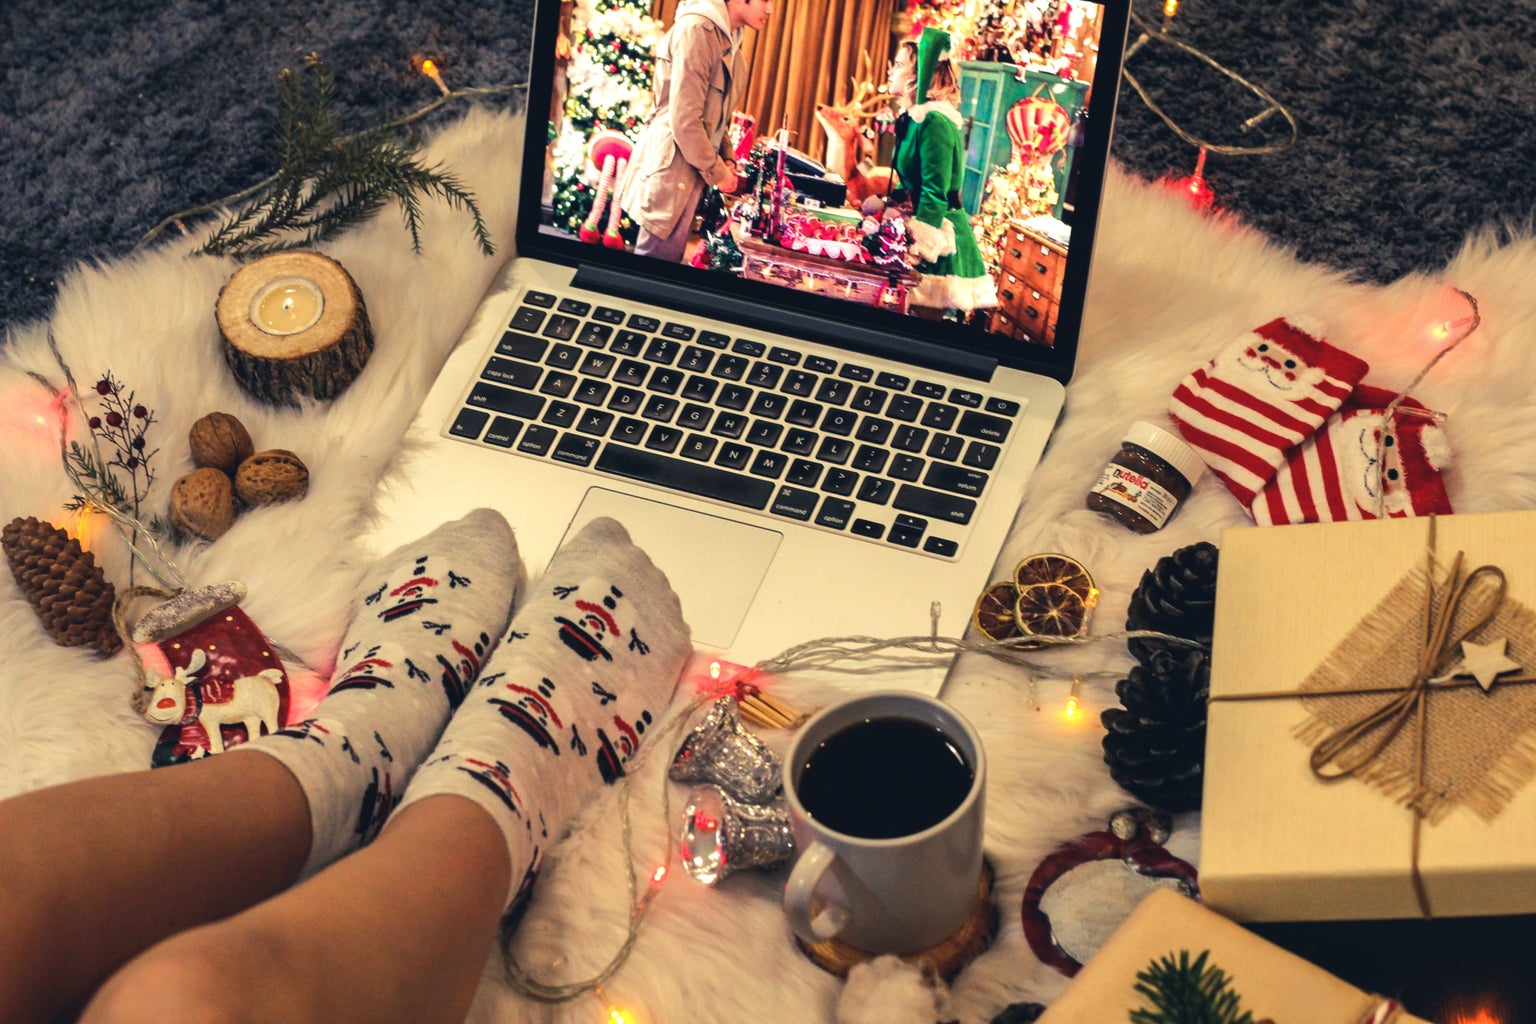 Watching holiday movie on laptop